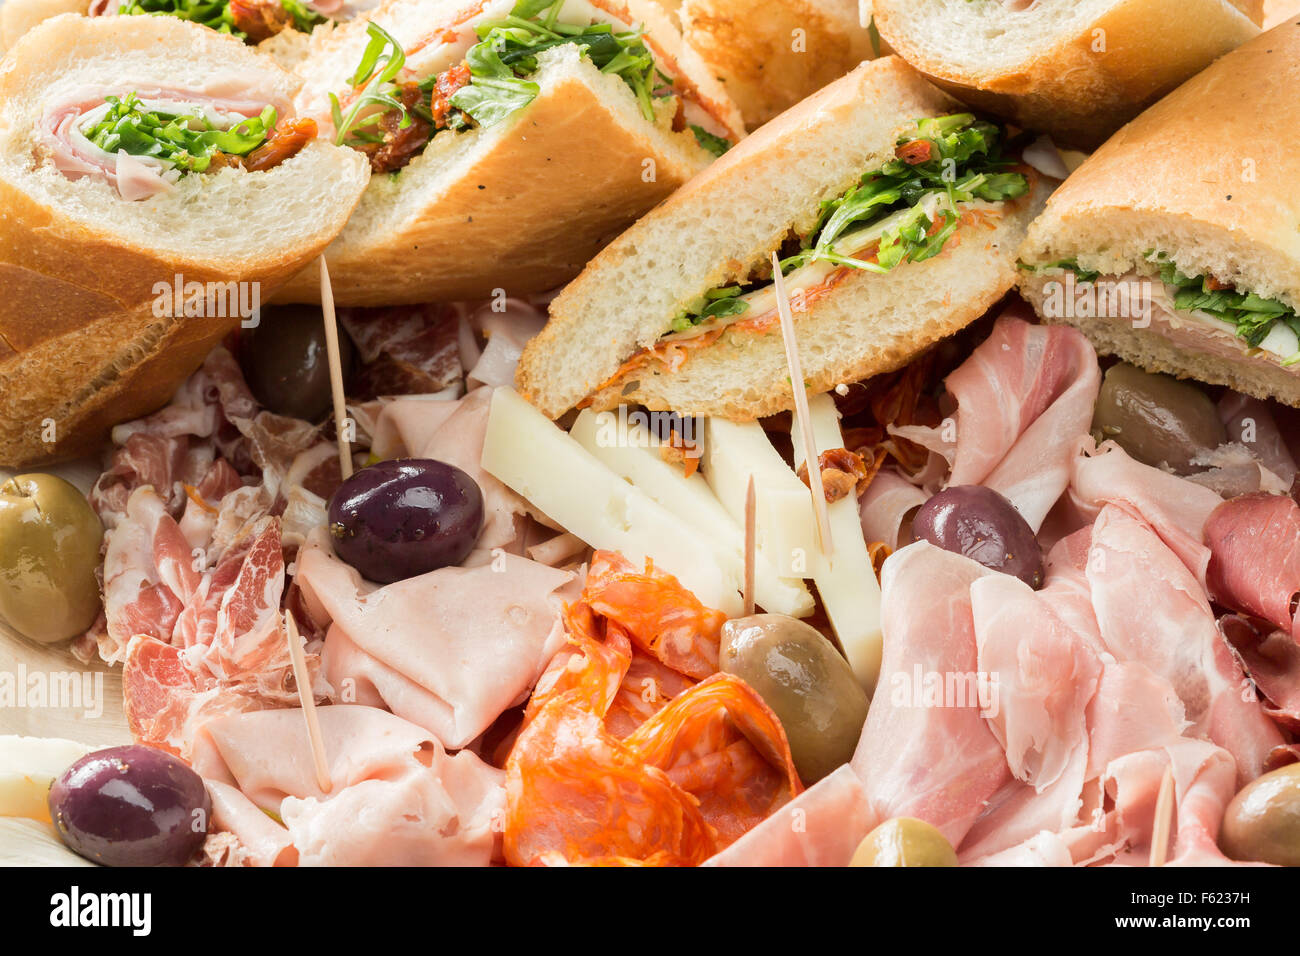 A Tasty Platter Of Italian Sandwiches And Cold Cuts Stock Photo Alamy